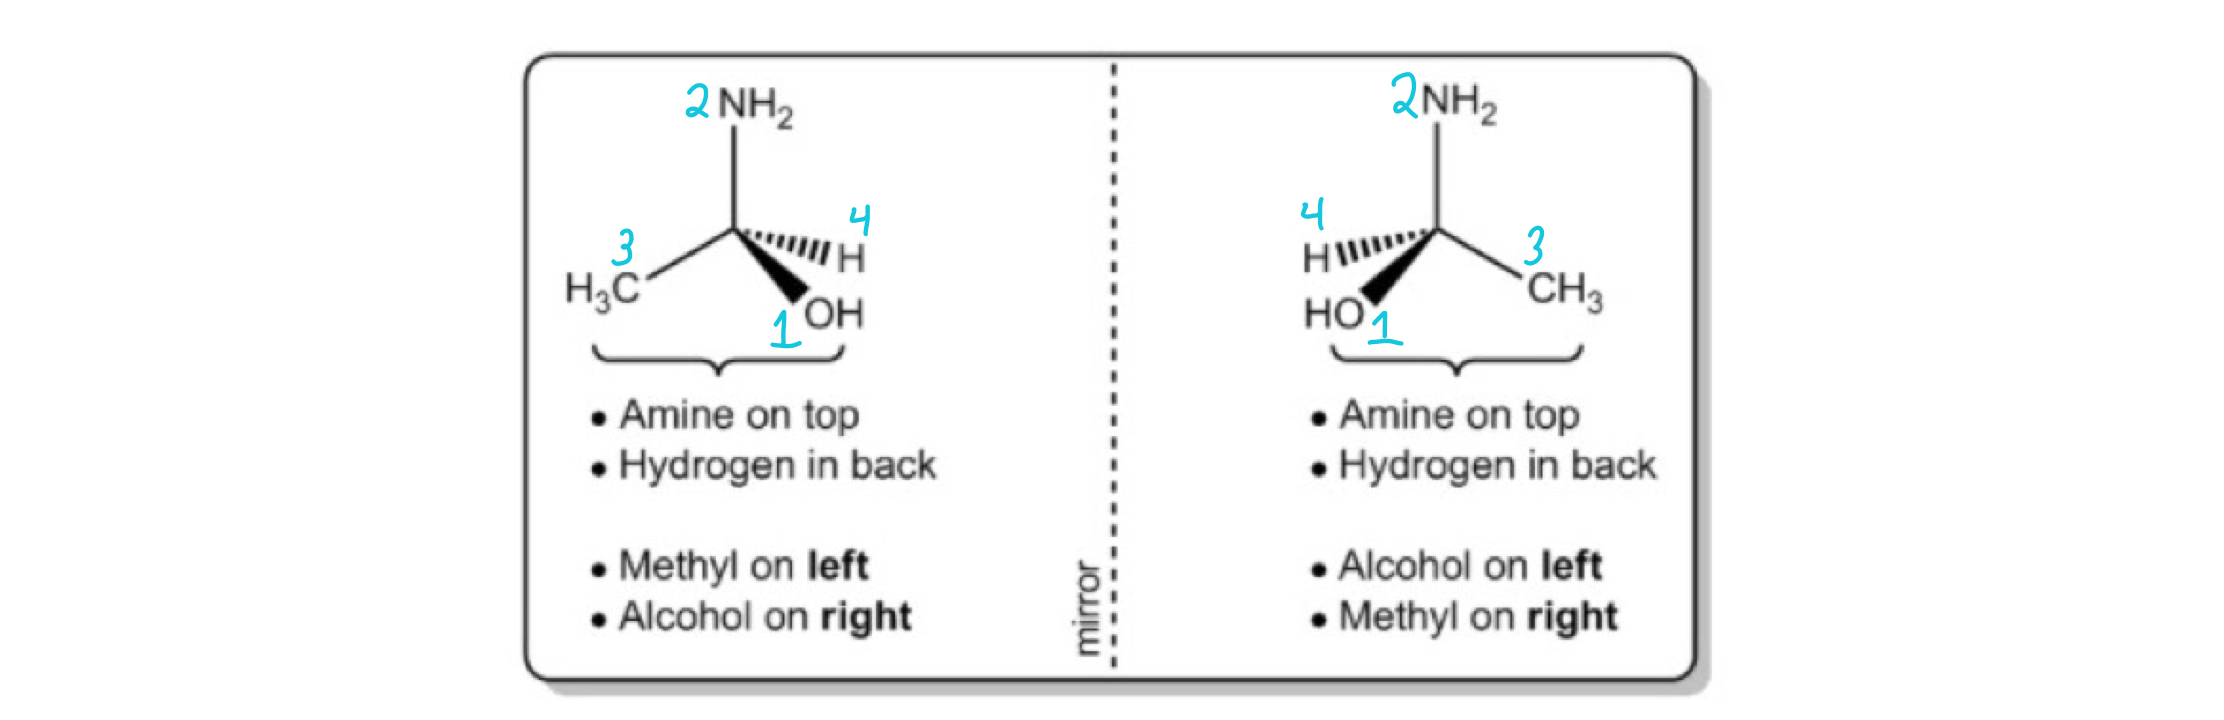 1-aminoethanol-with-labeled-priorities